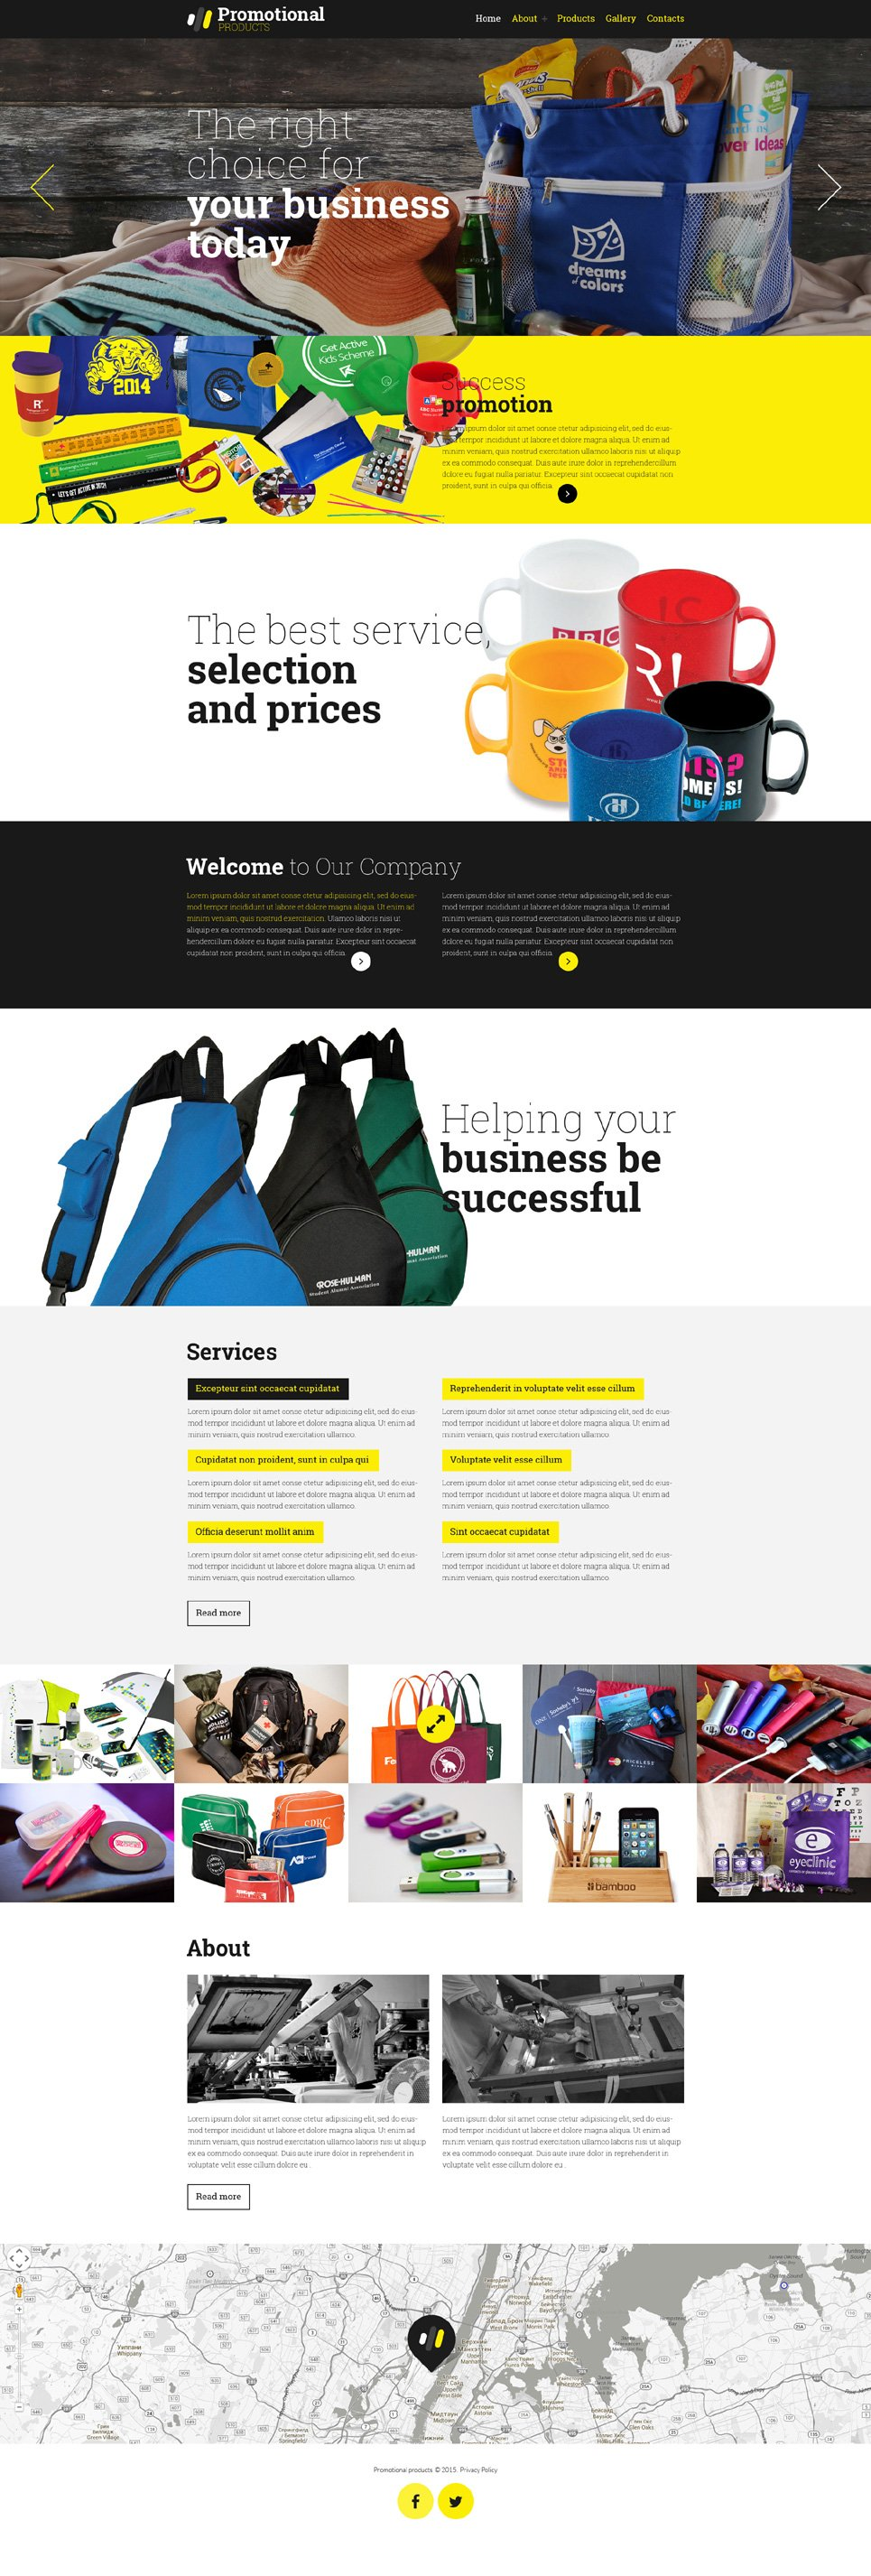 Advertising Agency template illustration image